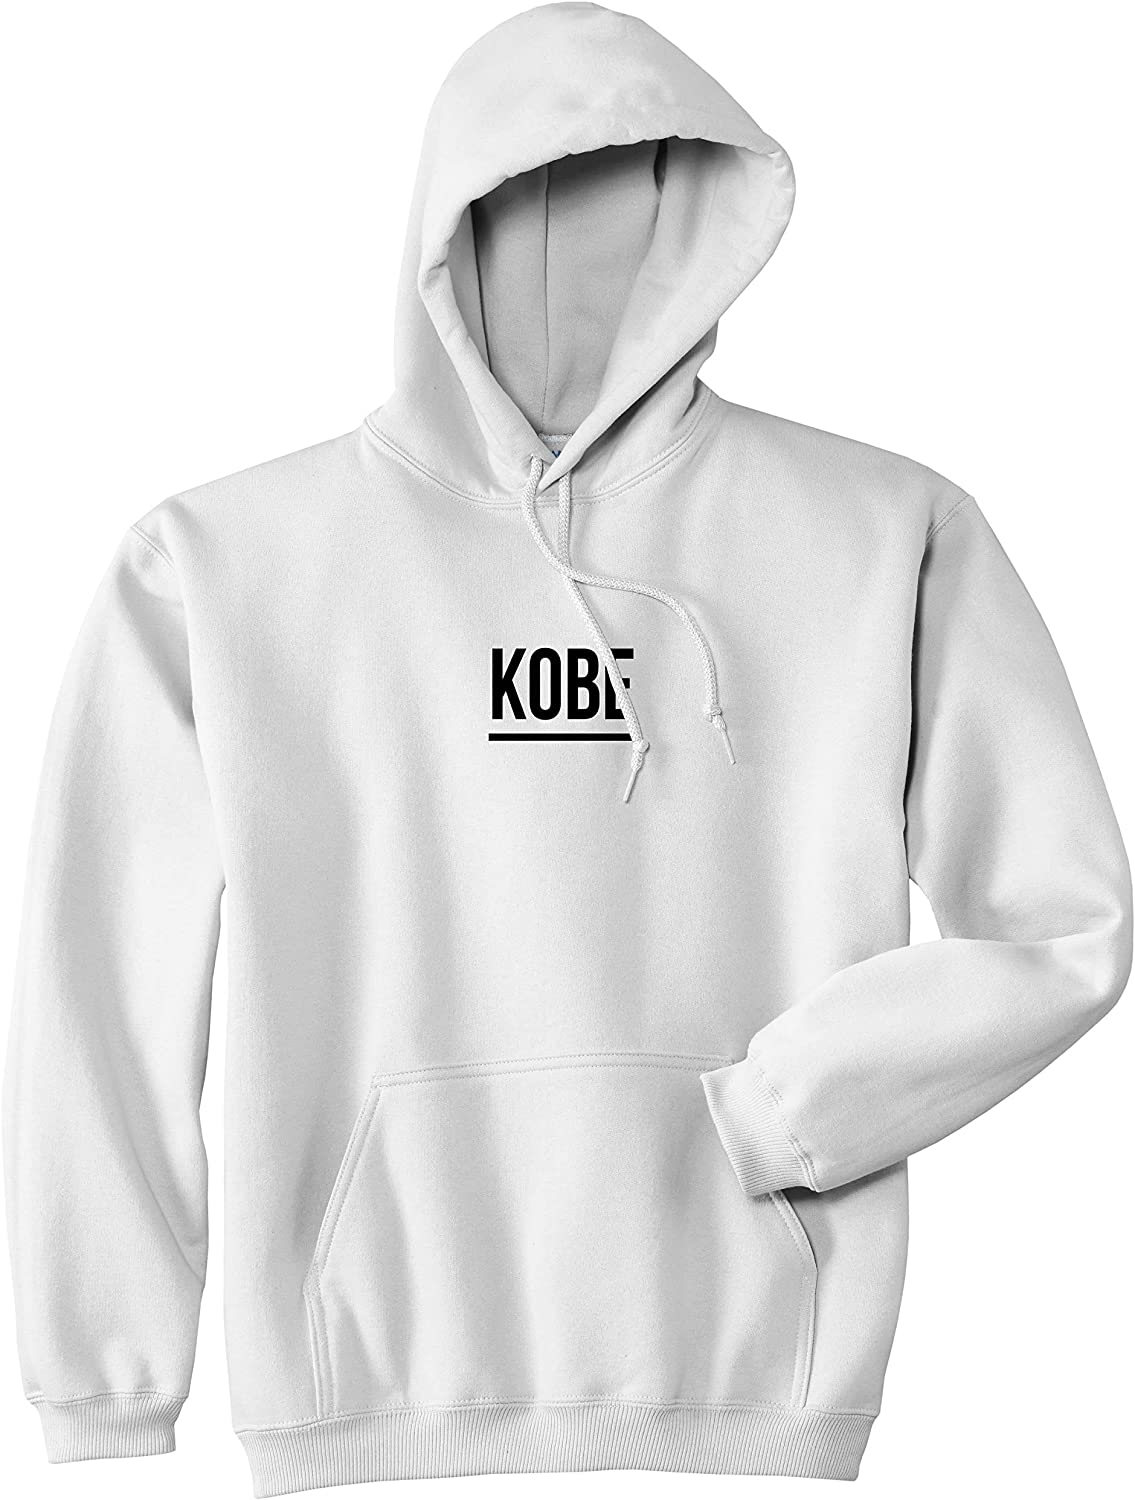 City of Kobe Simple Kids Boys Girls Pullover Hoodie Hoody